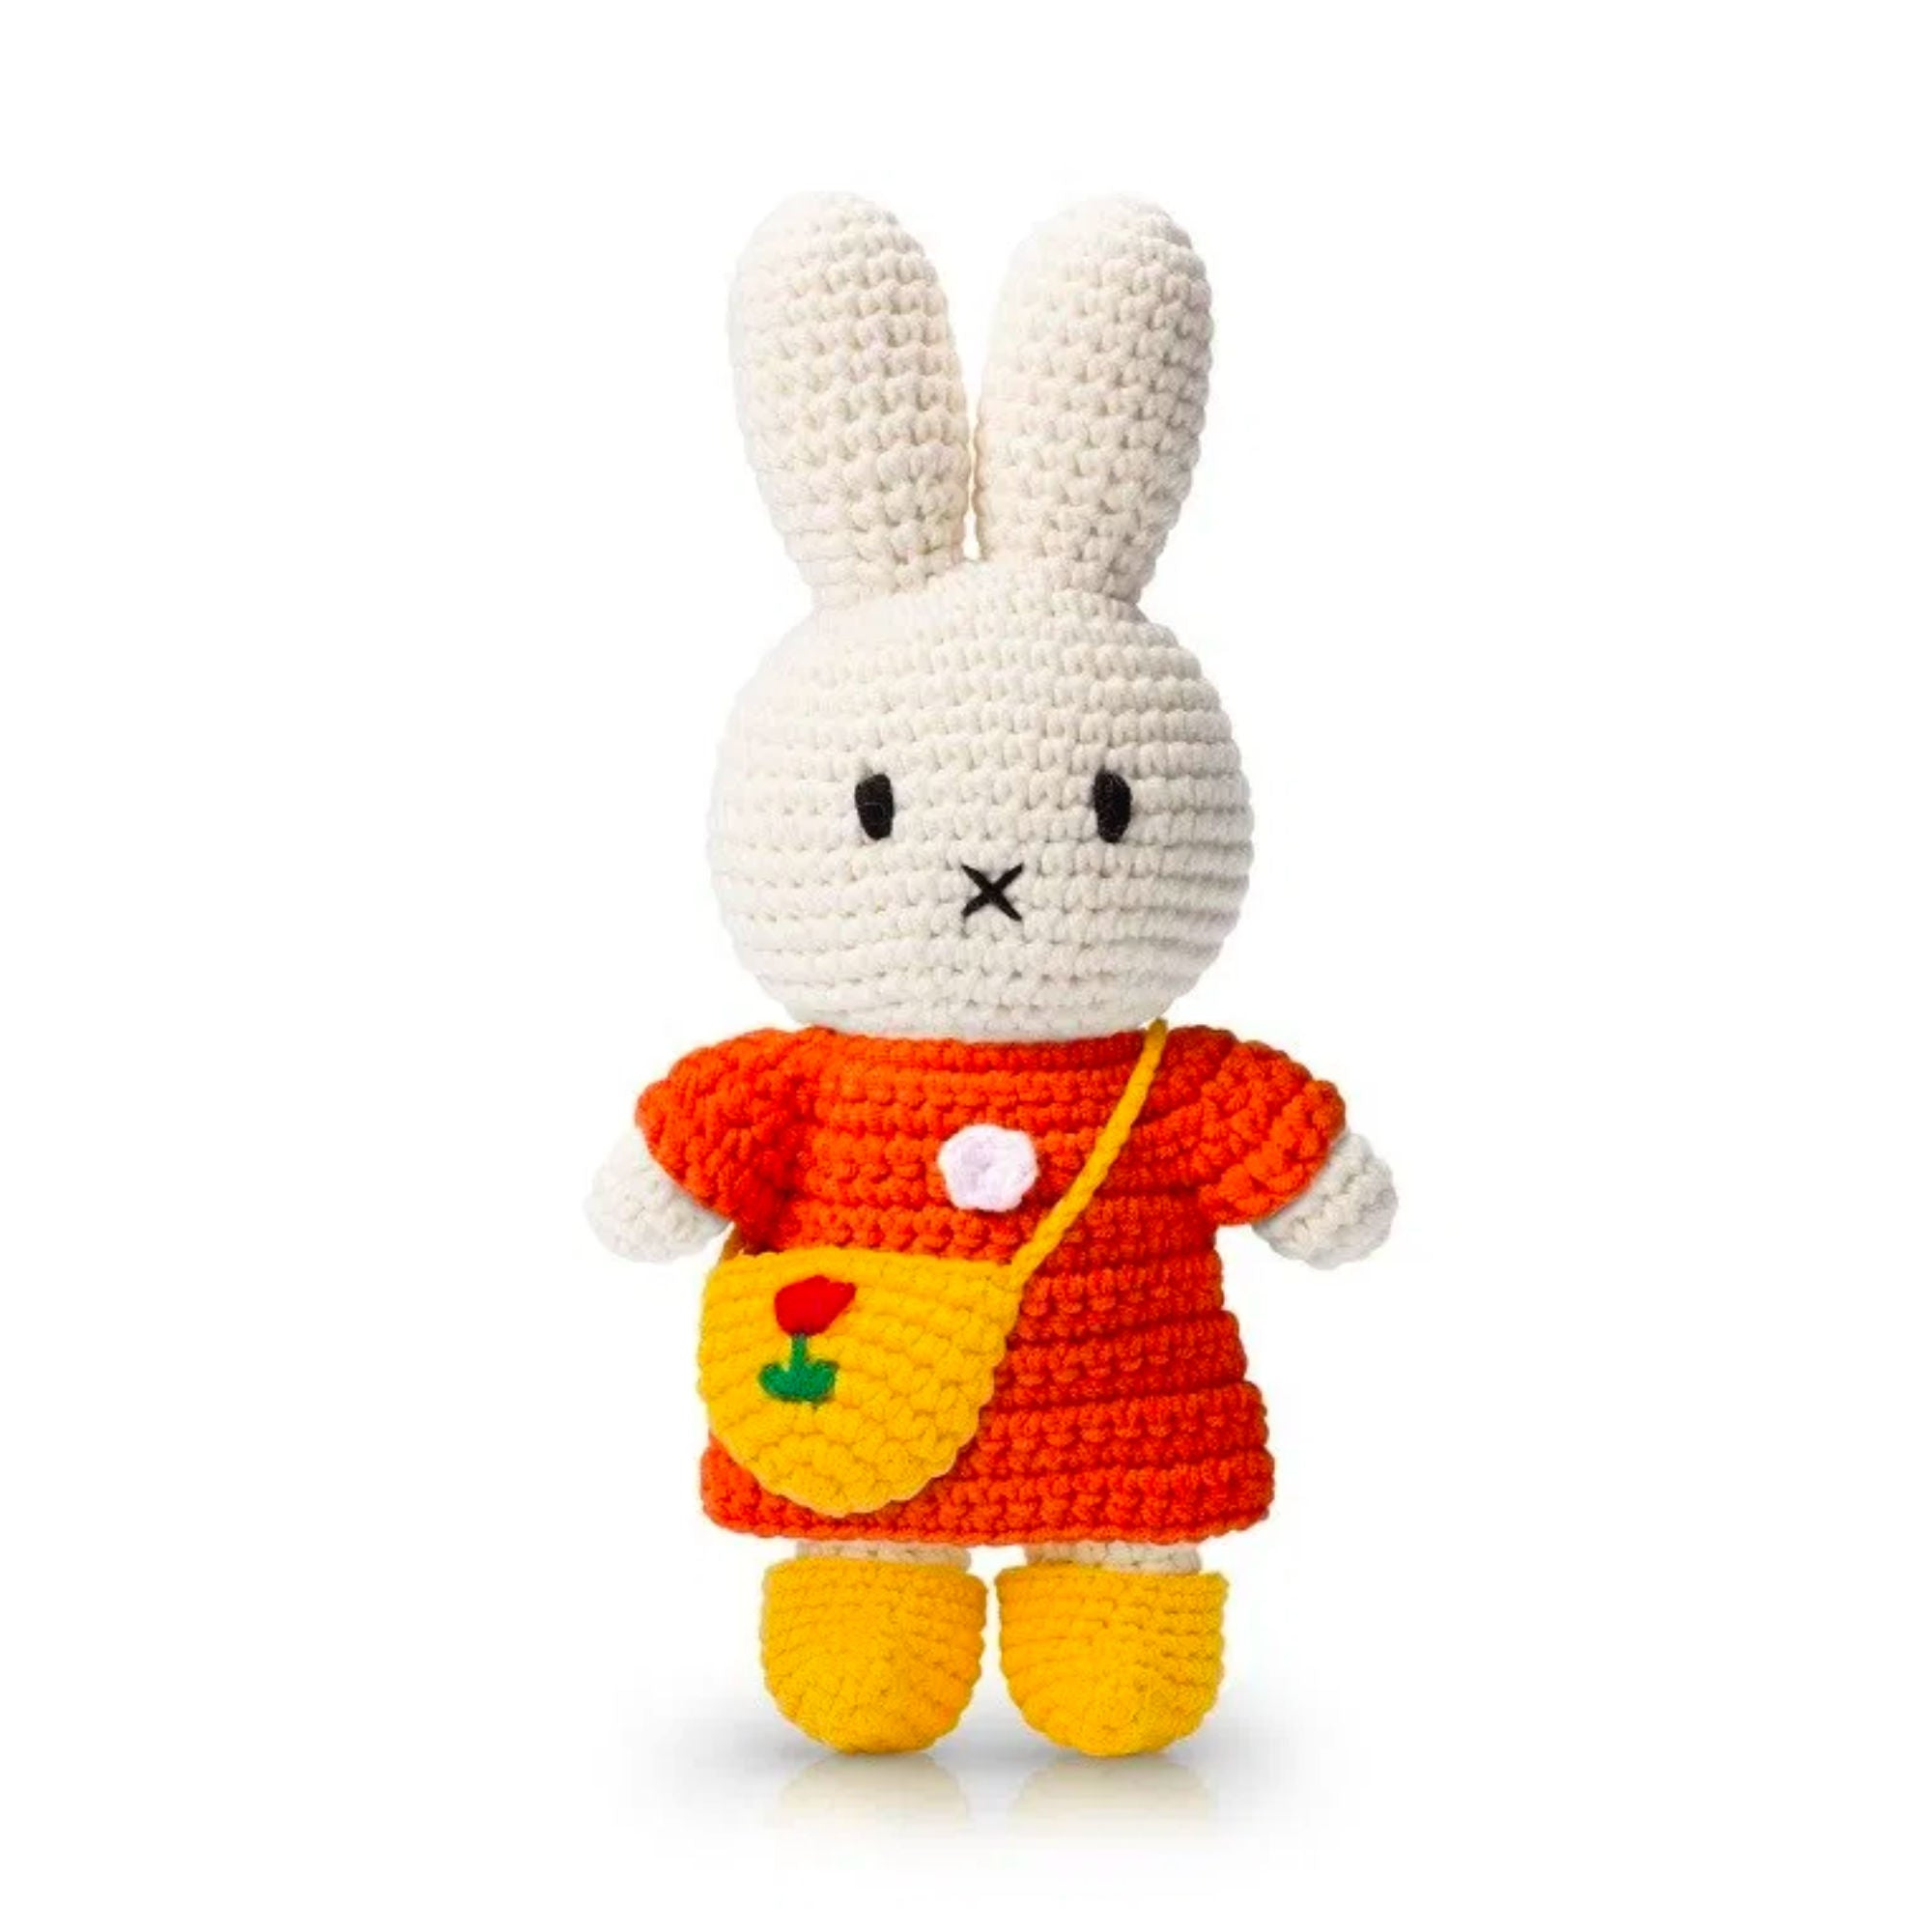 Just Dutch handmade doll, Miffy and her orange dress - yellow tulip bag and shoe